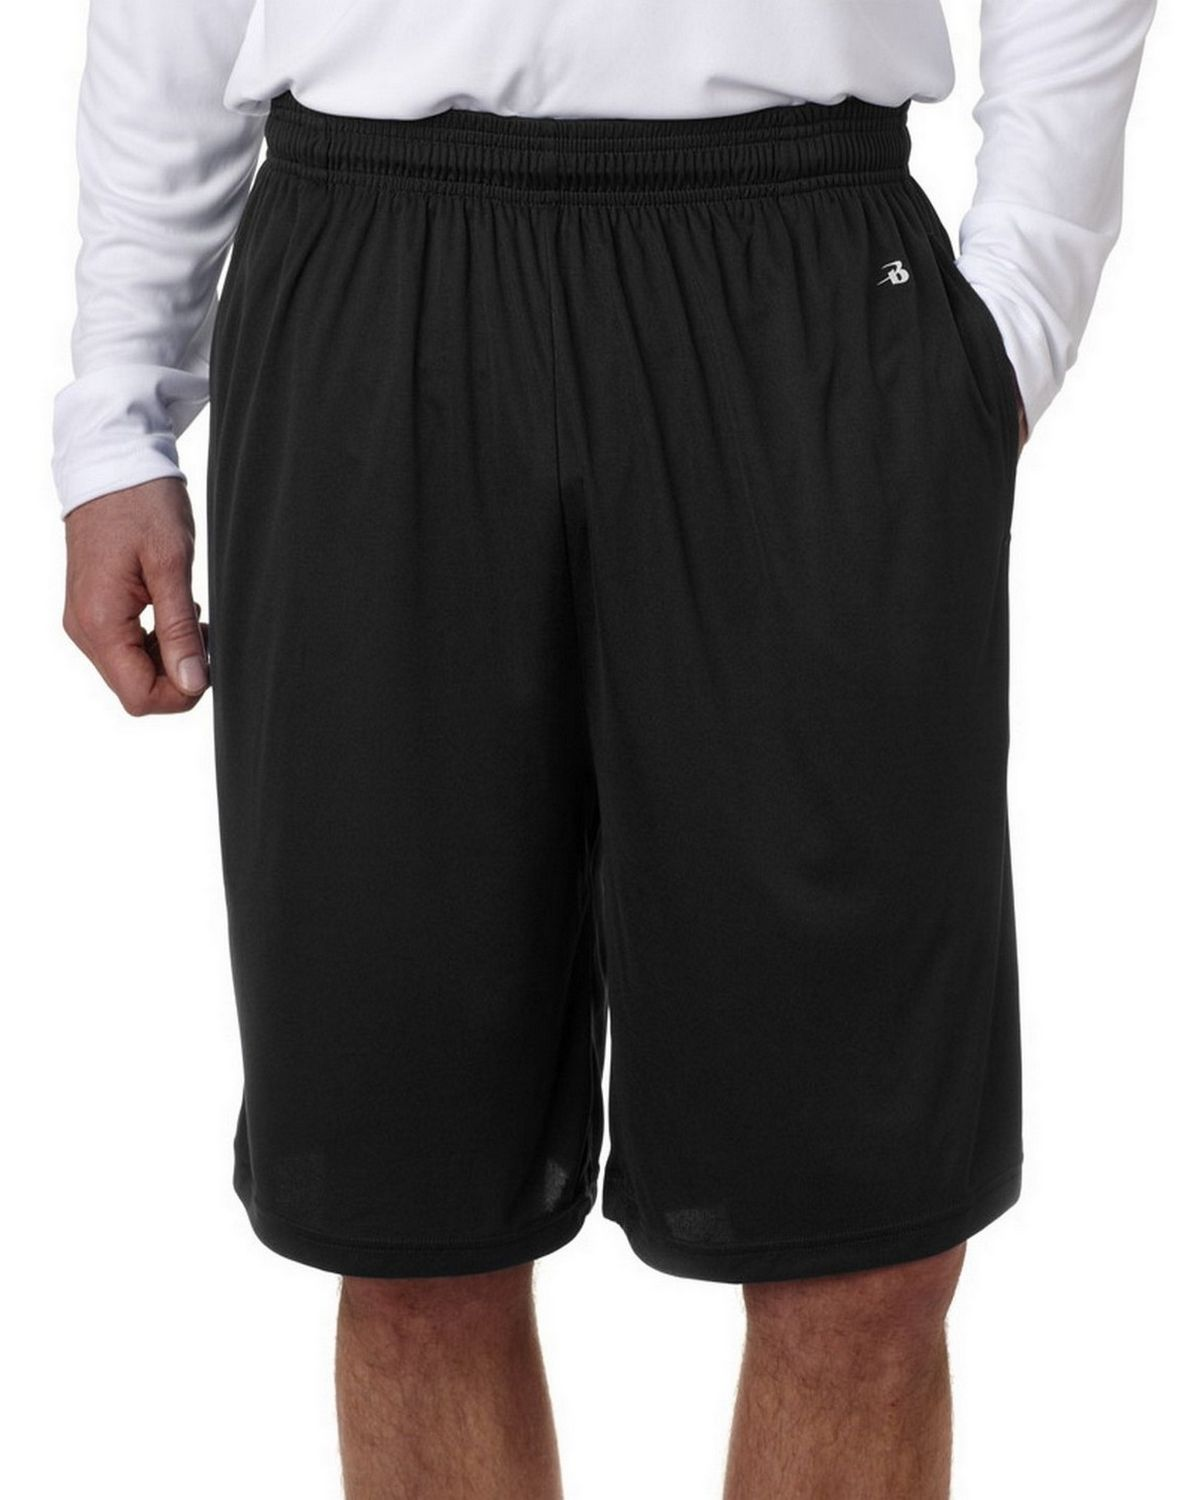 Badger 4119 BD Performance Shorts Pkt - Black - M 4119